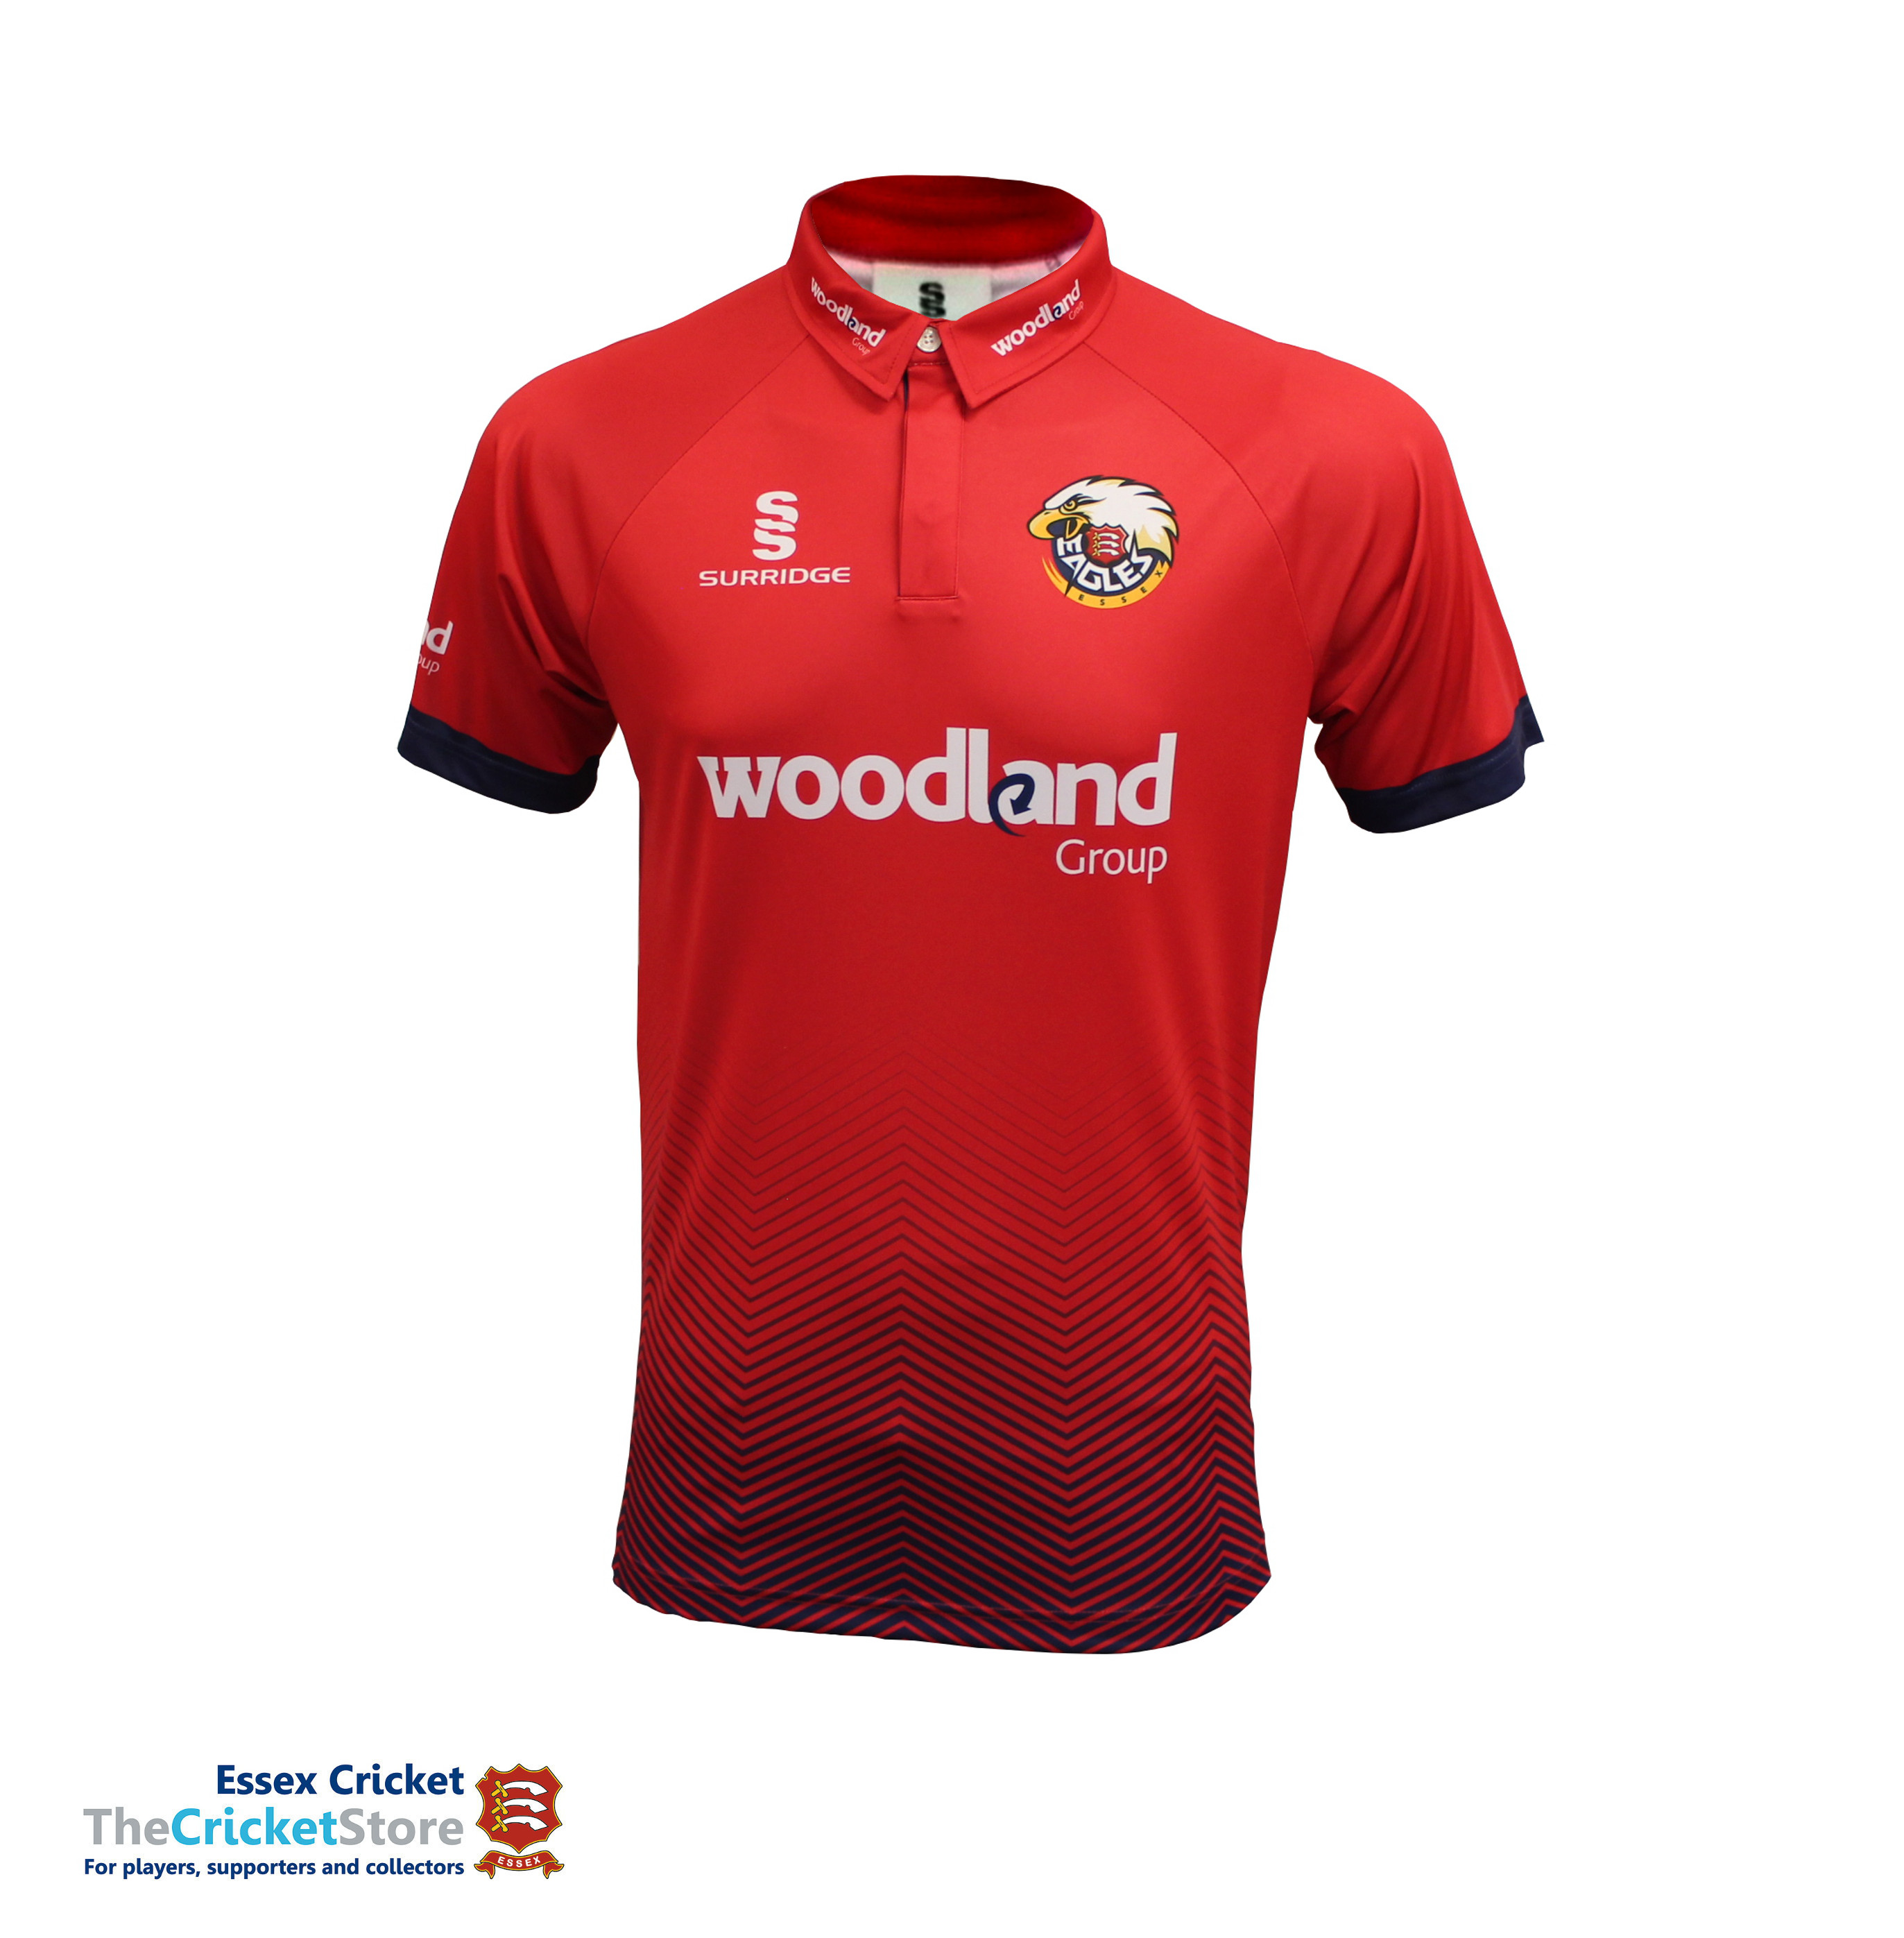 2019 Royal London One-Day Cup Replica Shirt – The Cricket Store at ... f371f2686